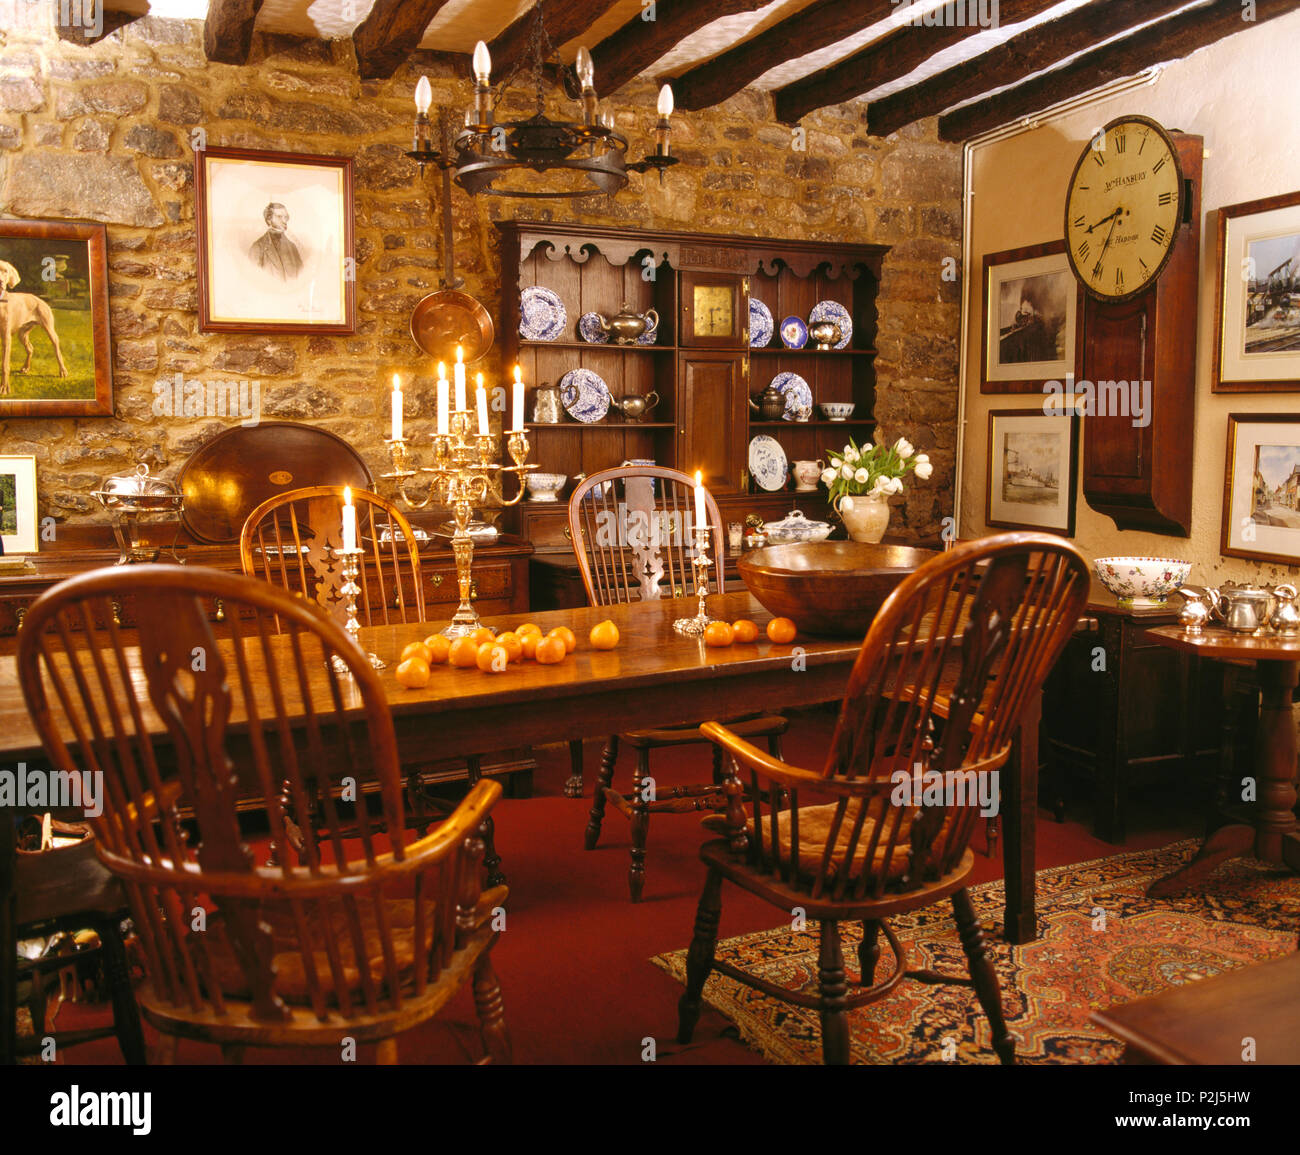 Country Dining Room Chairs Antique Windsor Chairs At Table In Dark Country Dining Room With